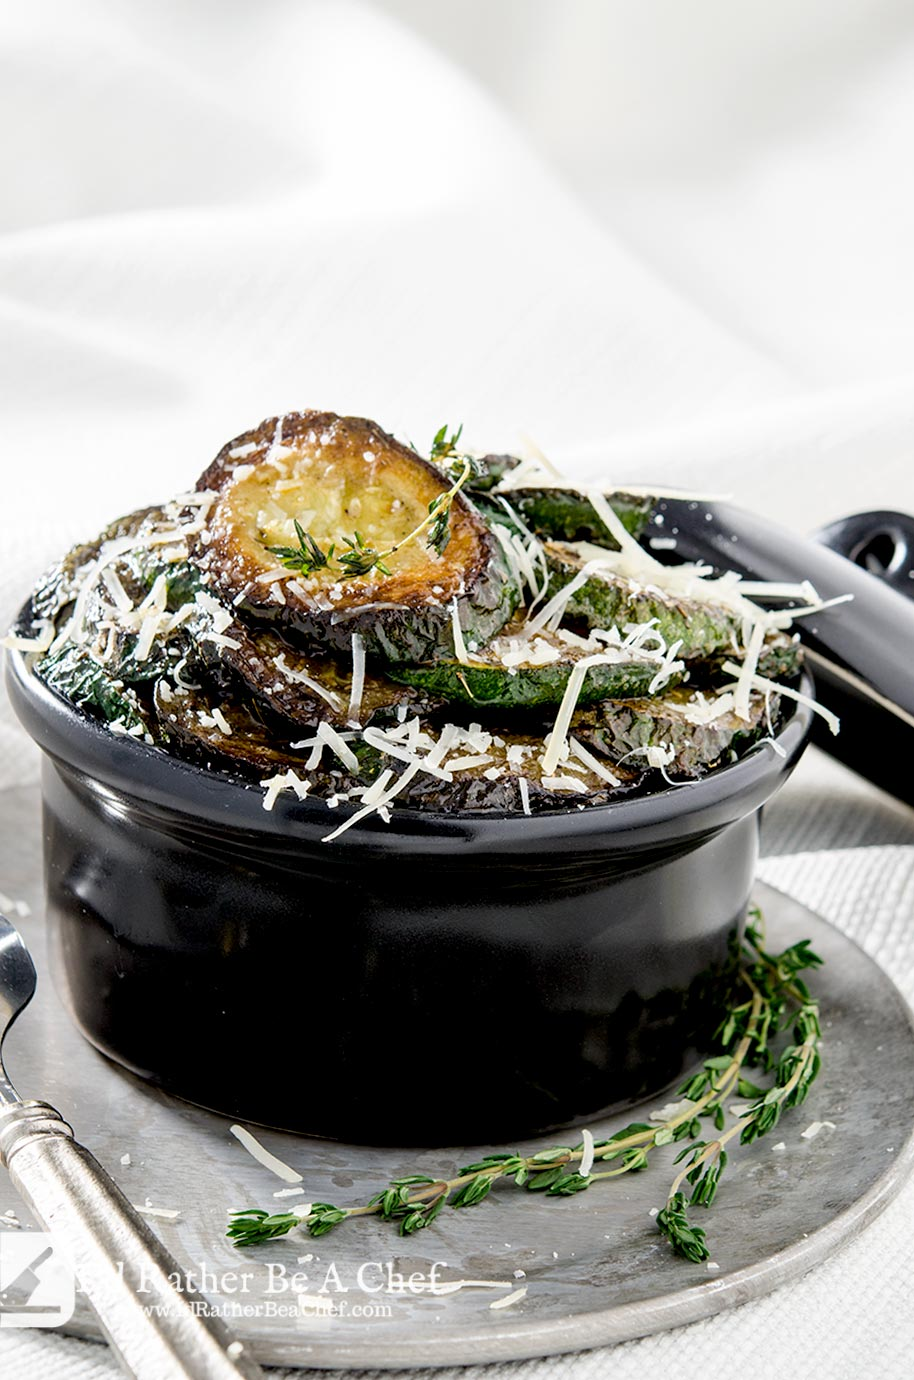 Sauteed Zucchini with Thyme | I'd Rather Be A Chef